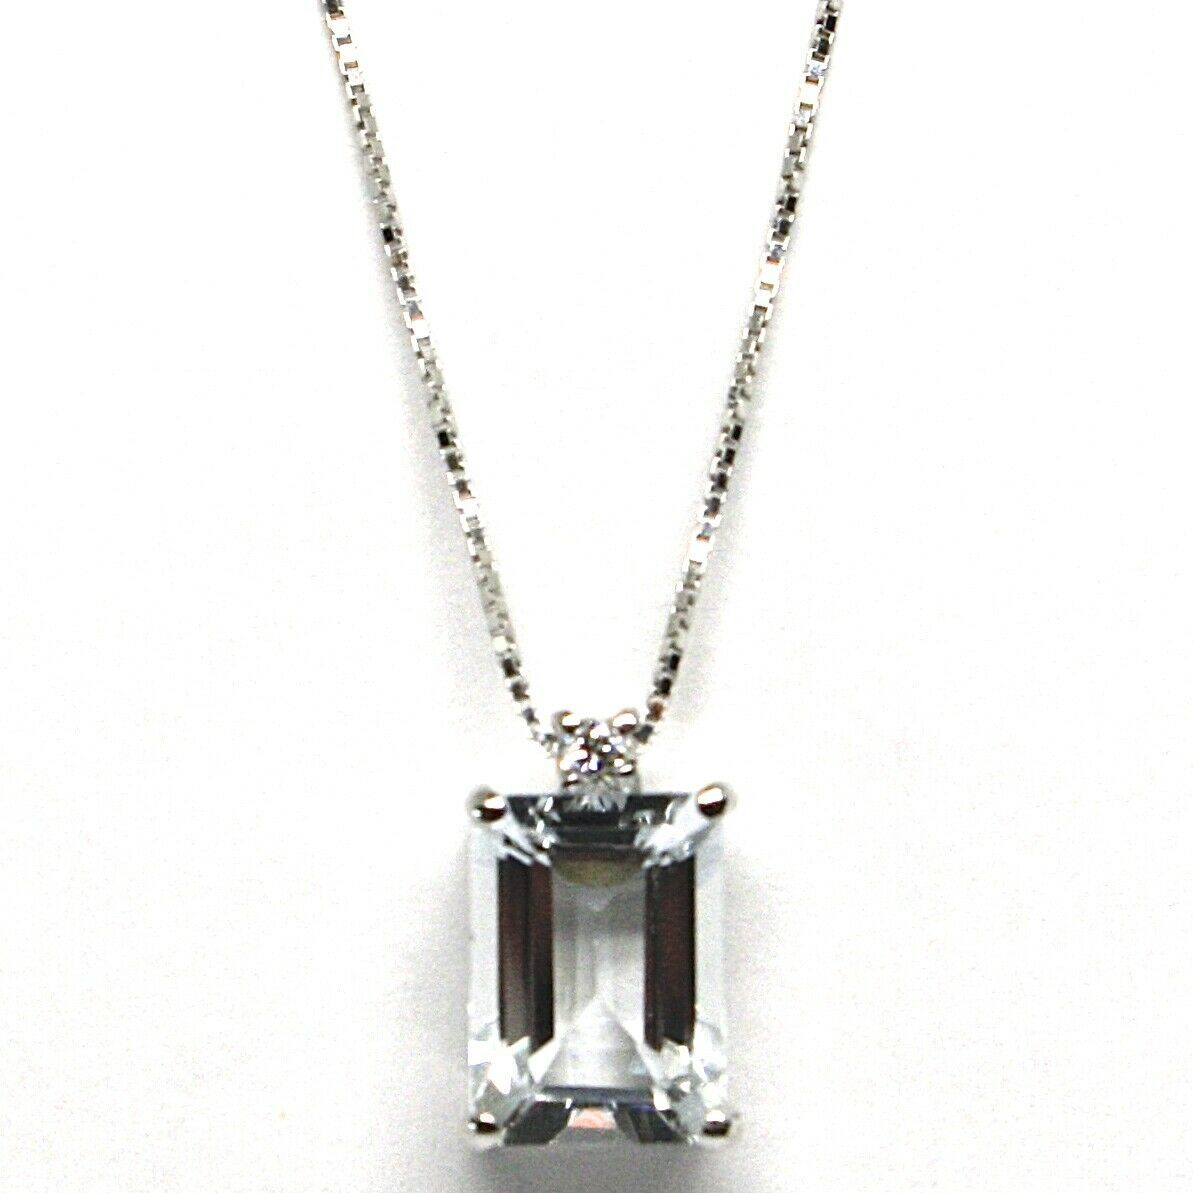 Primary image for 18K WHITE GOLD NECKLACE AQUAMARINE 1.30 EMERALD CUT & DIAMOND, PENDANT & CHAIN